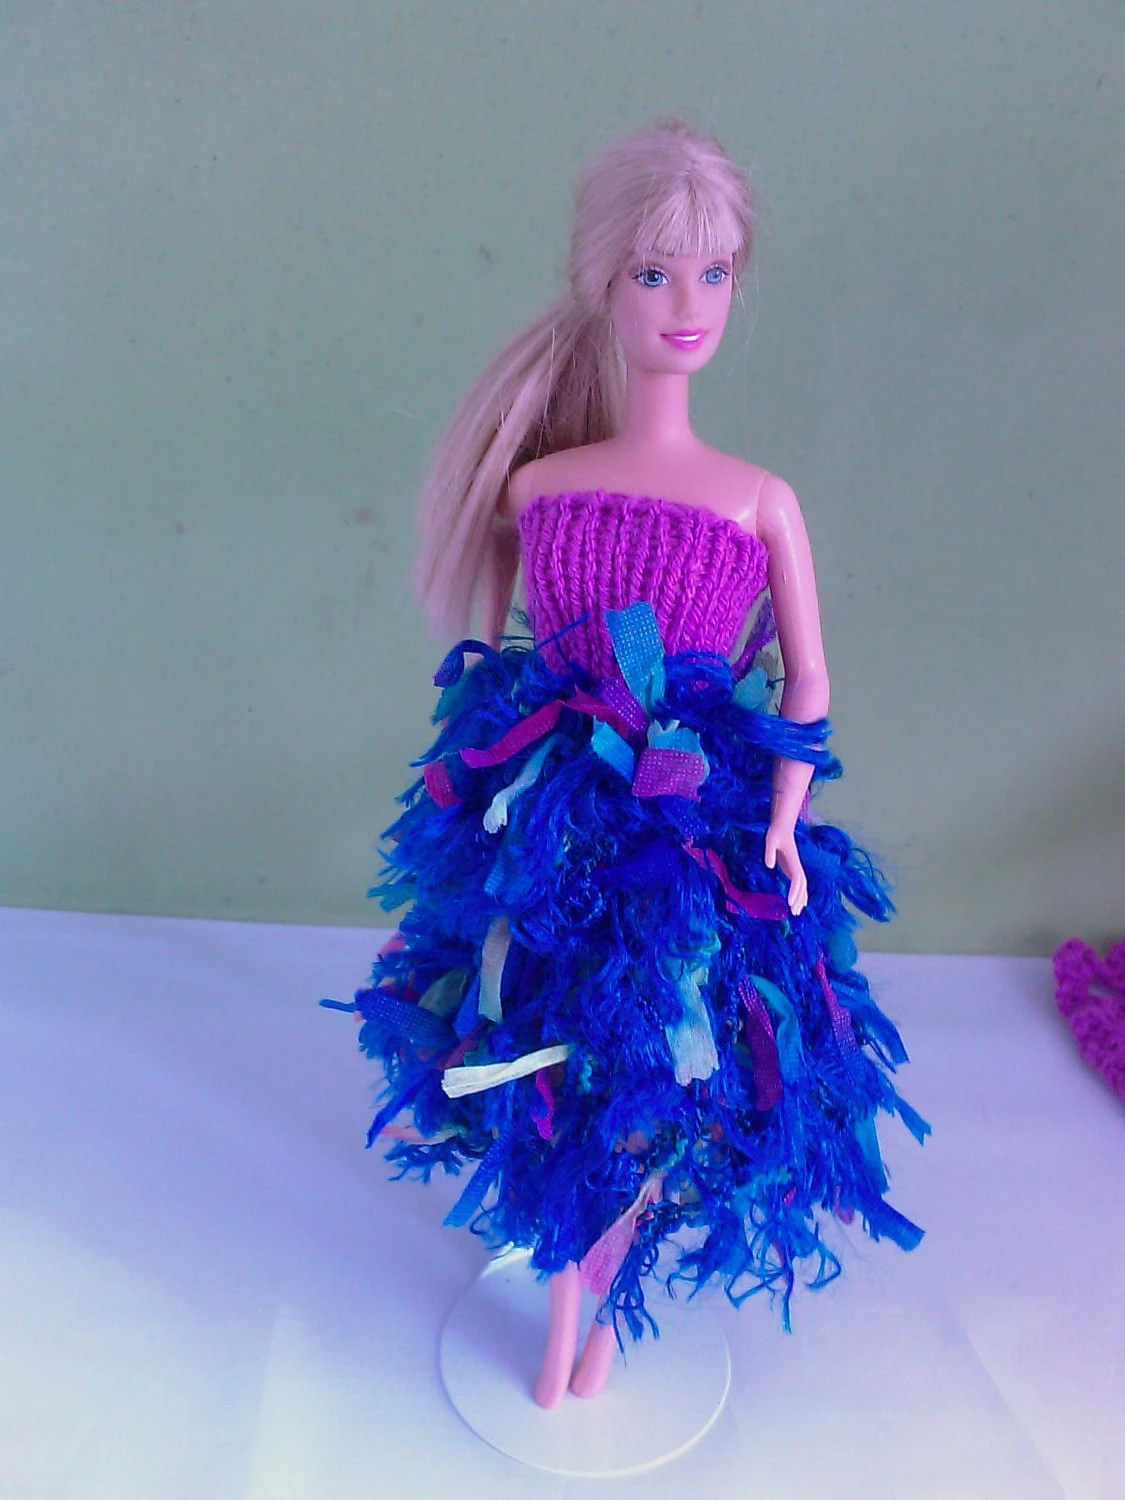 New handmade ROYAL WEDDING inspired individual design dress and hat- barbie/sindy dolls clothes           760  x  54